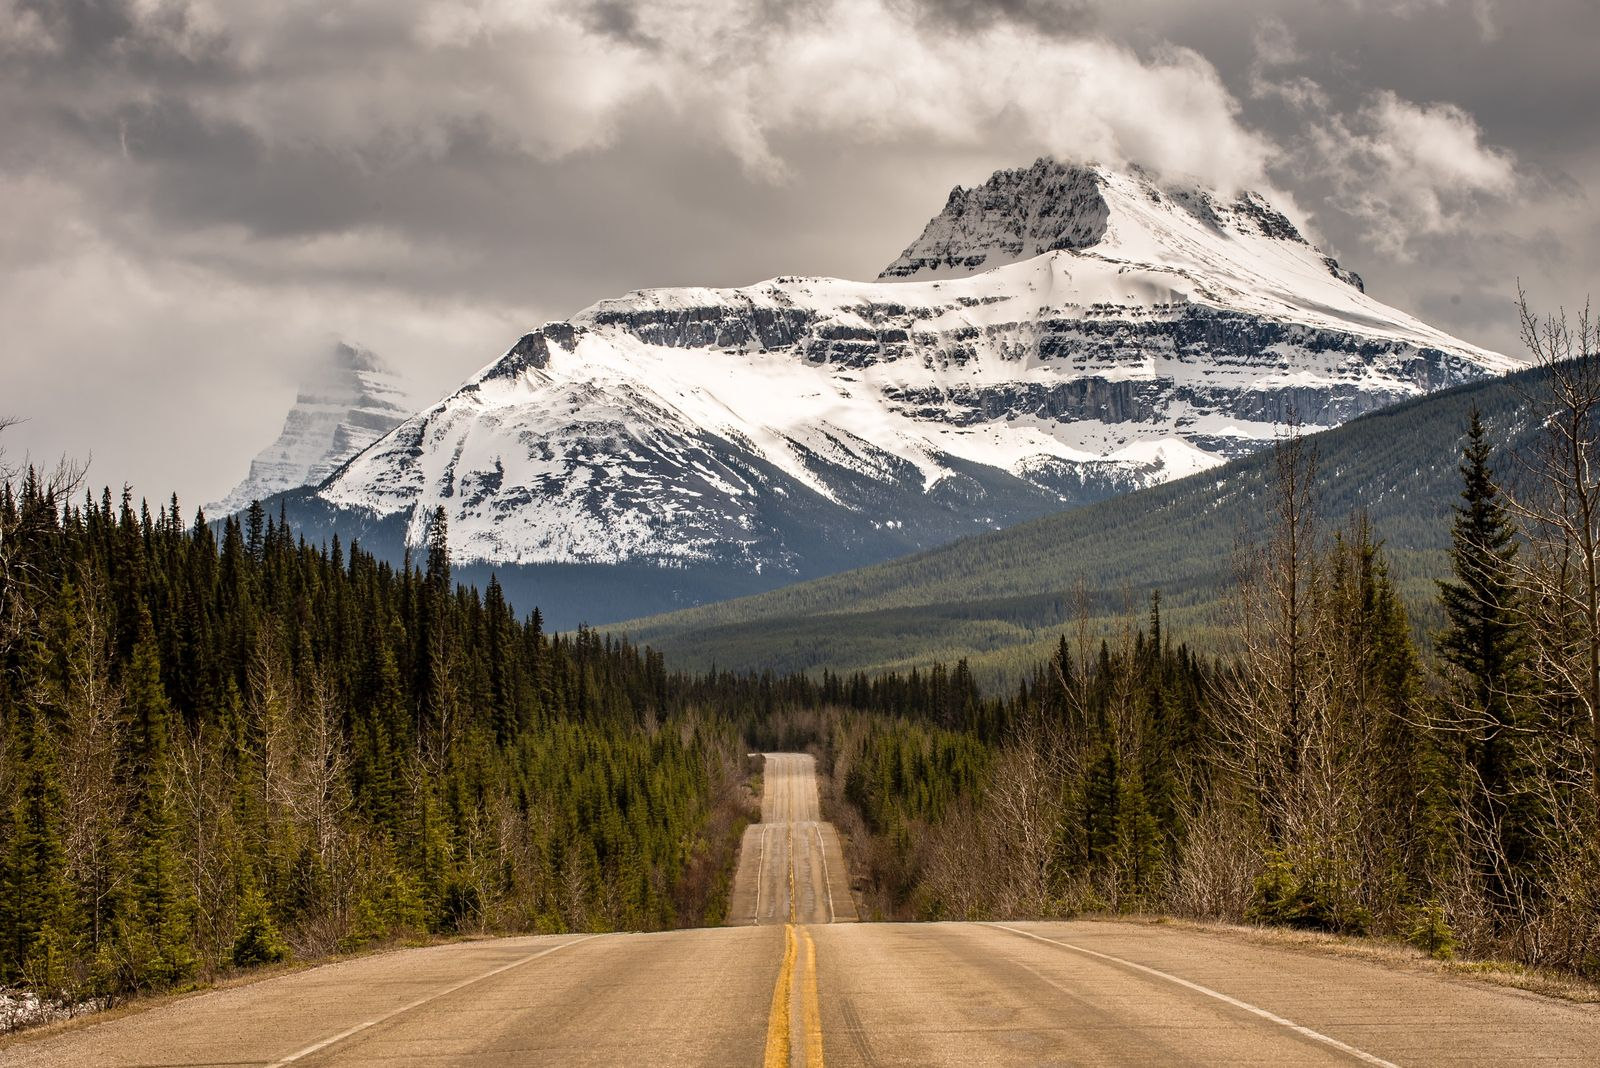 Icefields Parkway leading toward the Canadian Rocky Mountains and Jasper National Park.